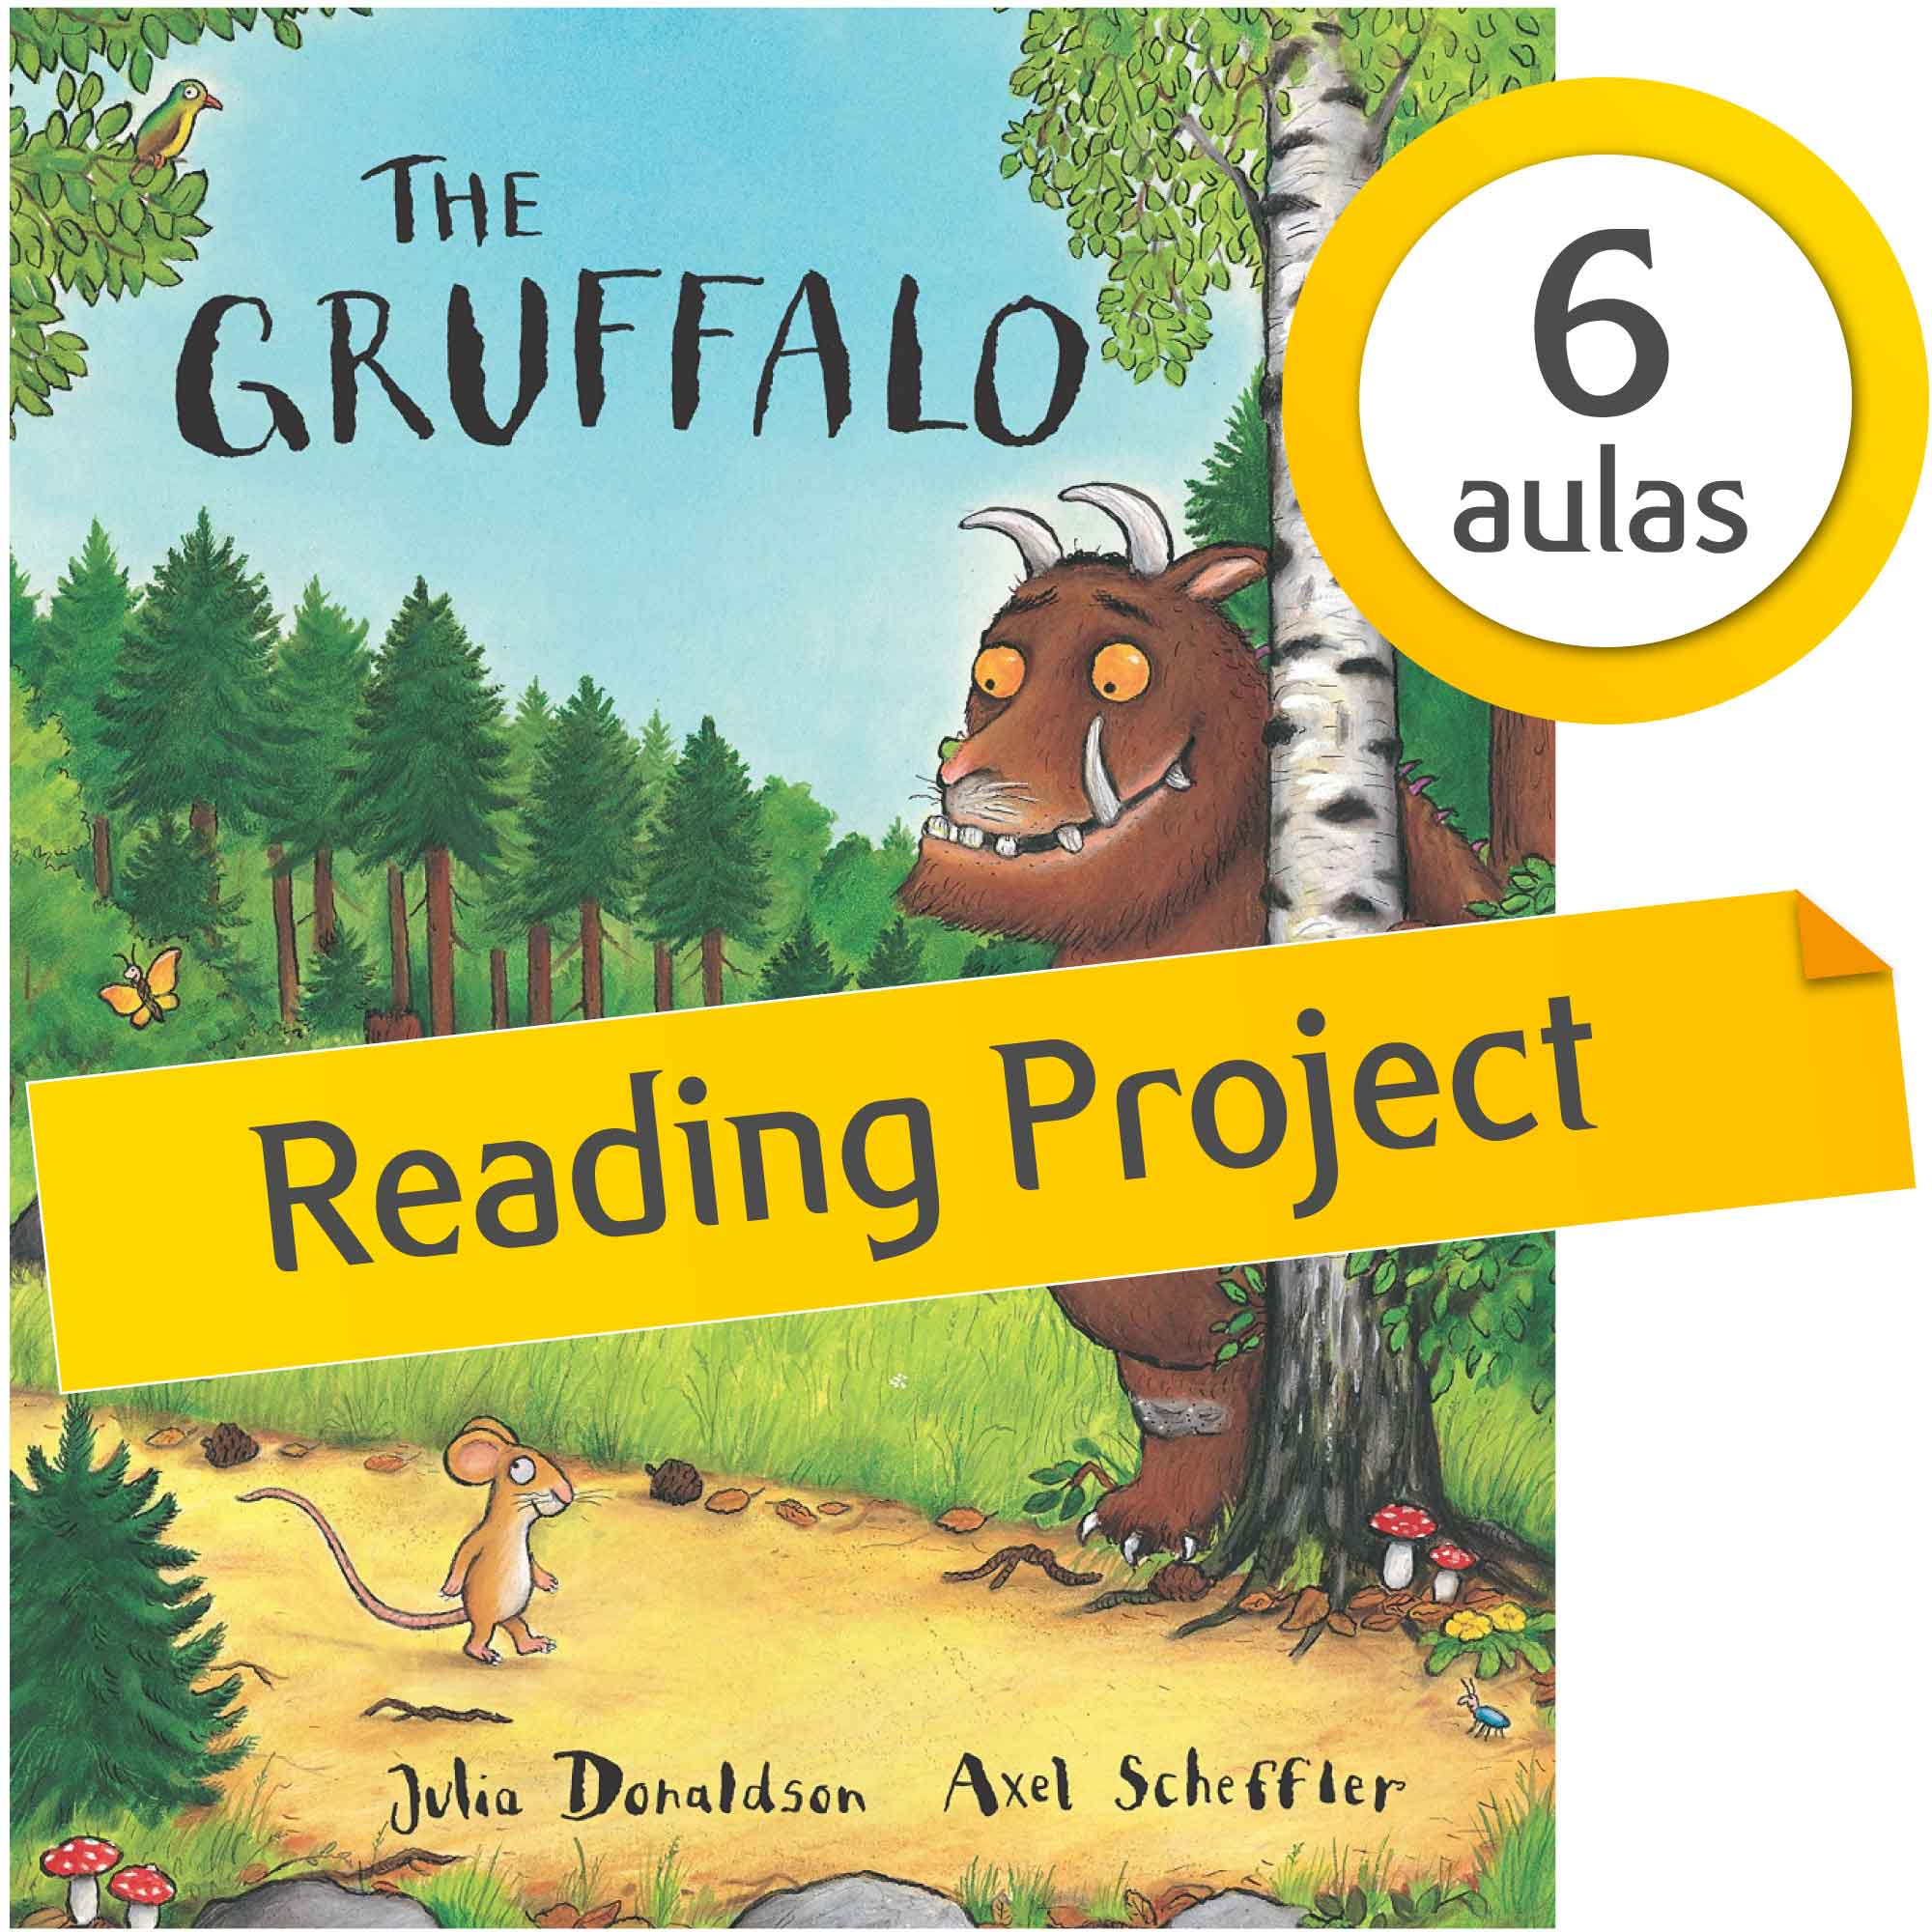 The Gruffalo - Reading Project